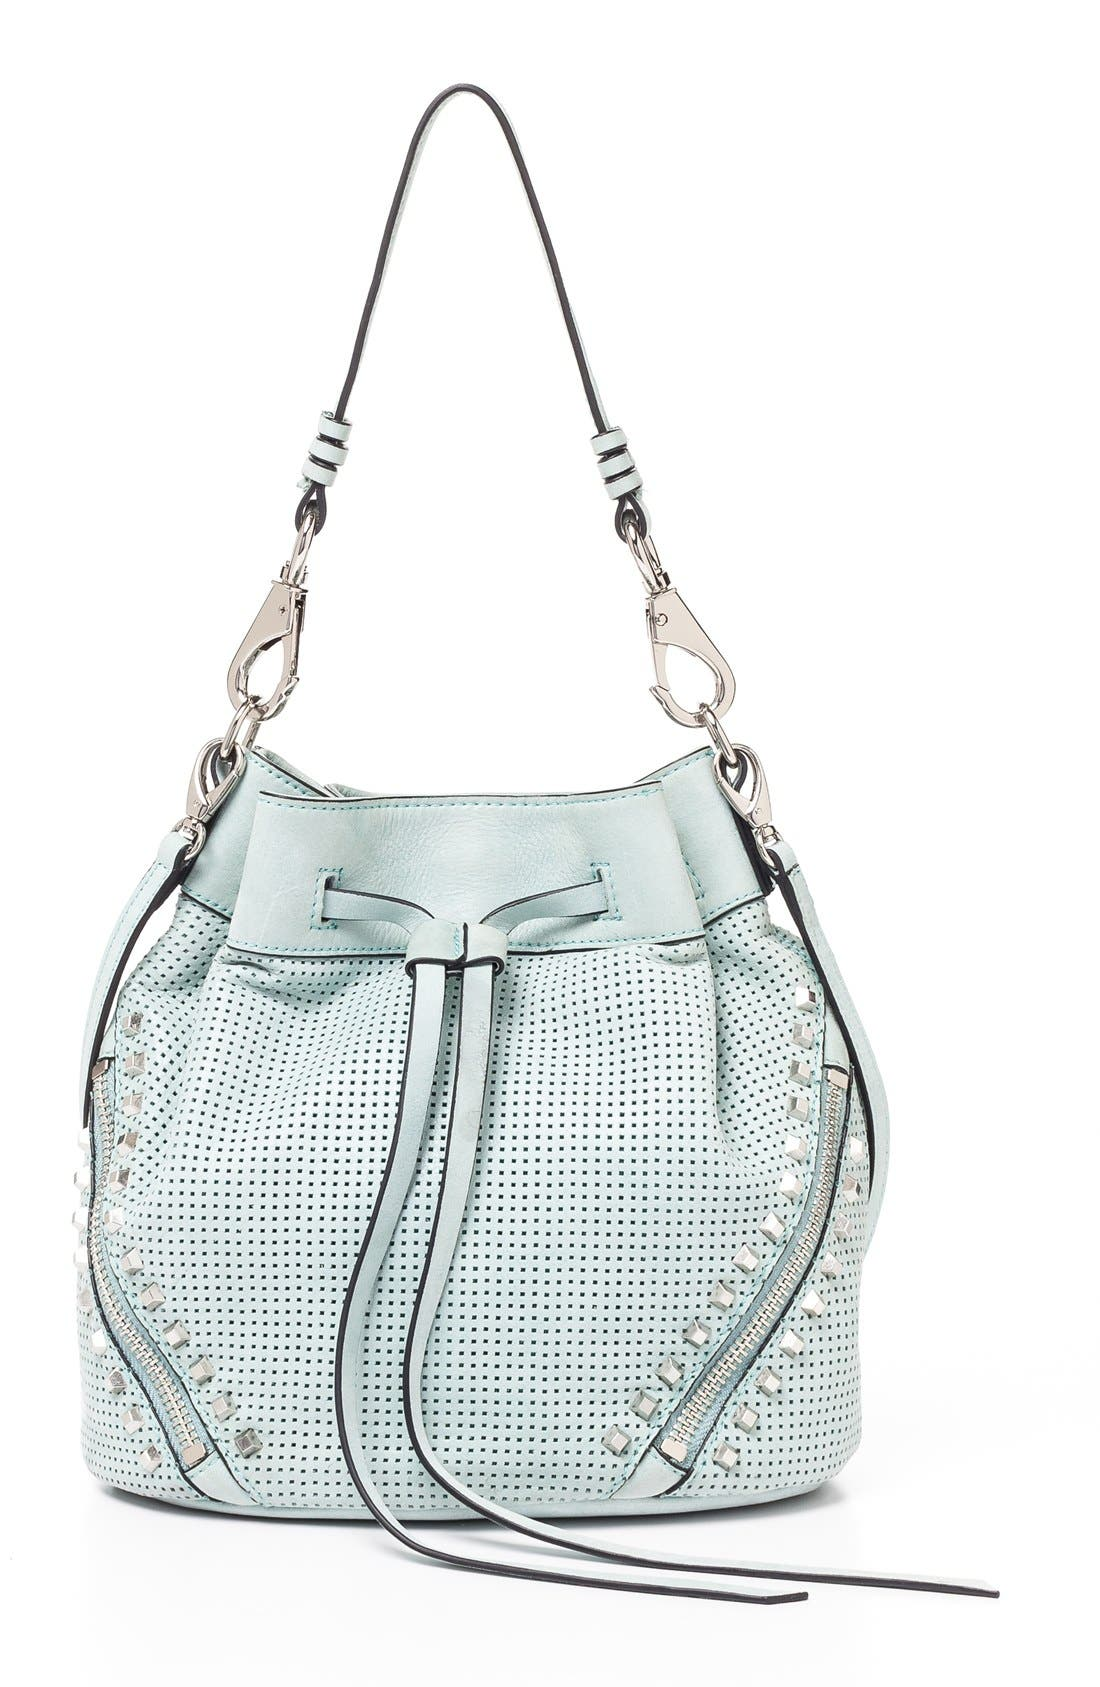 Alternate Image 1 Selected - She + Lo 'Make Your Mark' Leather Bucket Bag